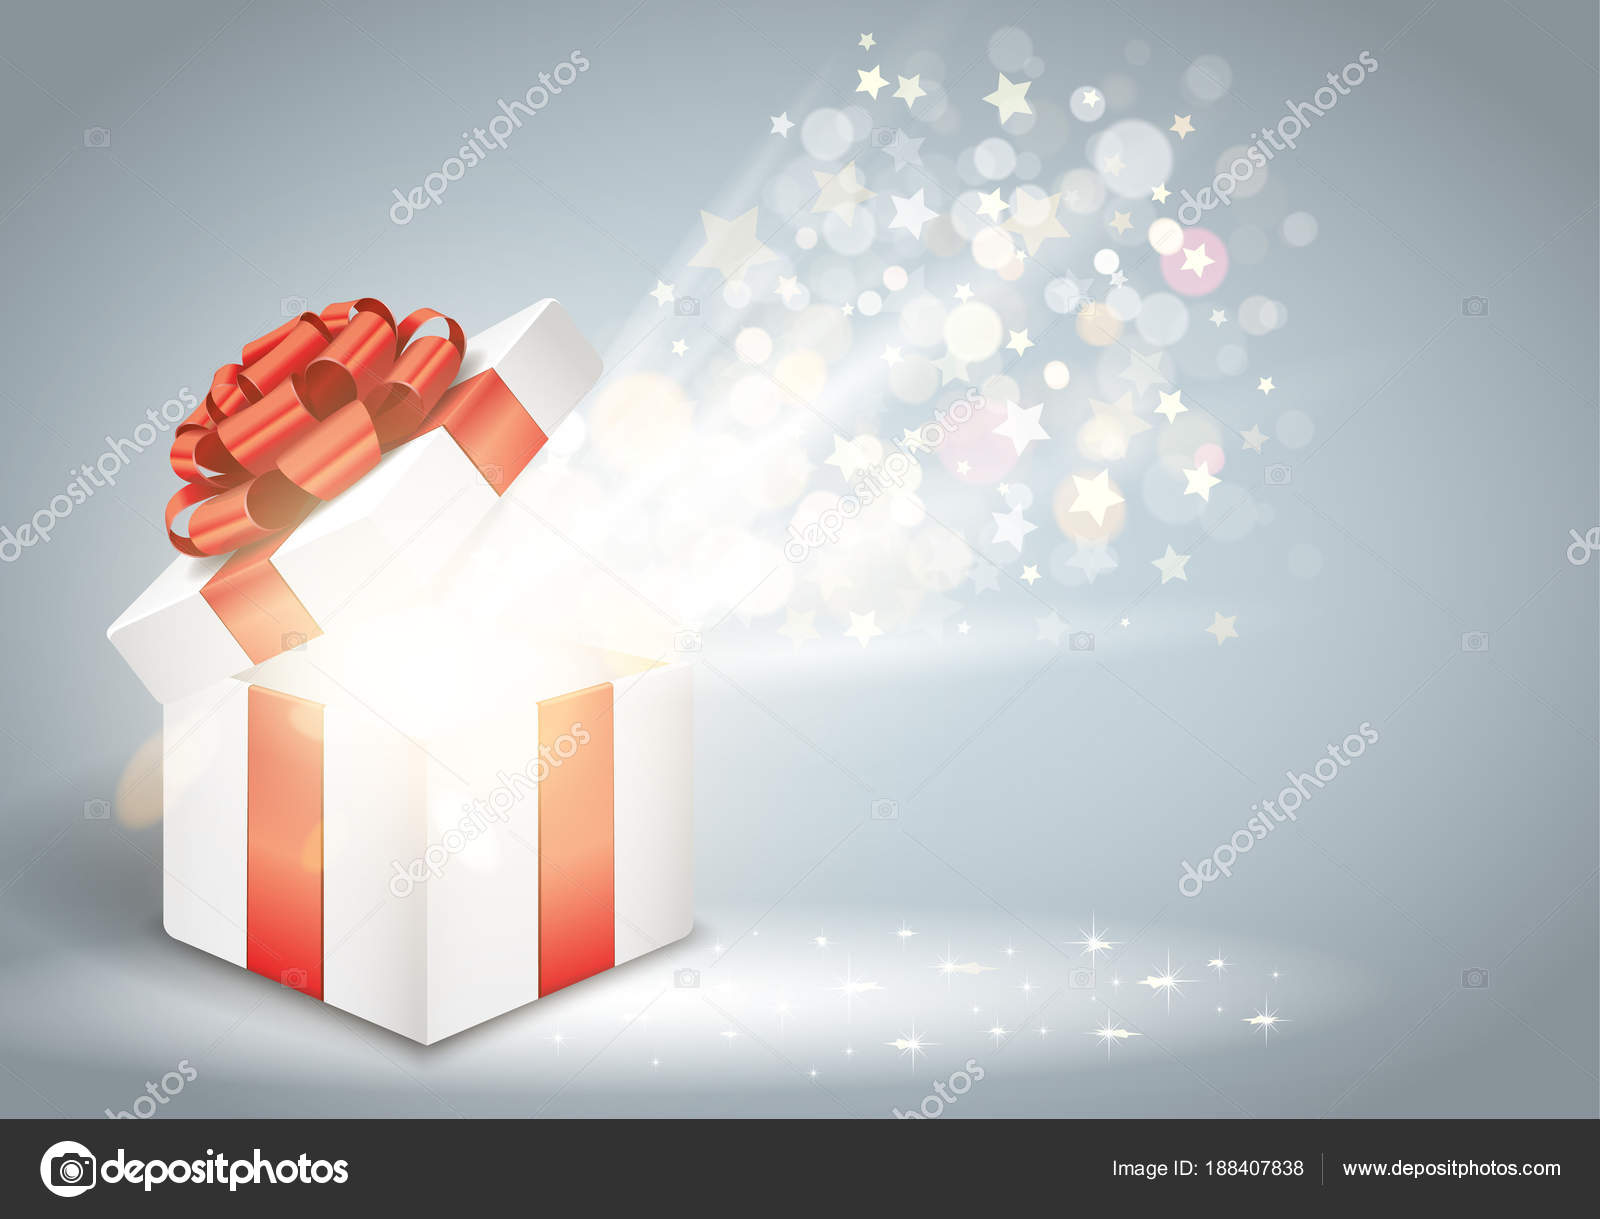 Glowing gift box photo